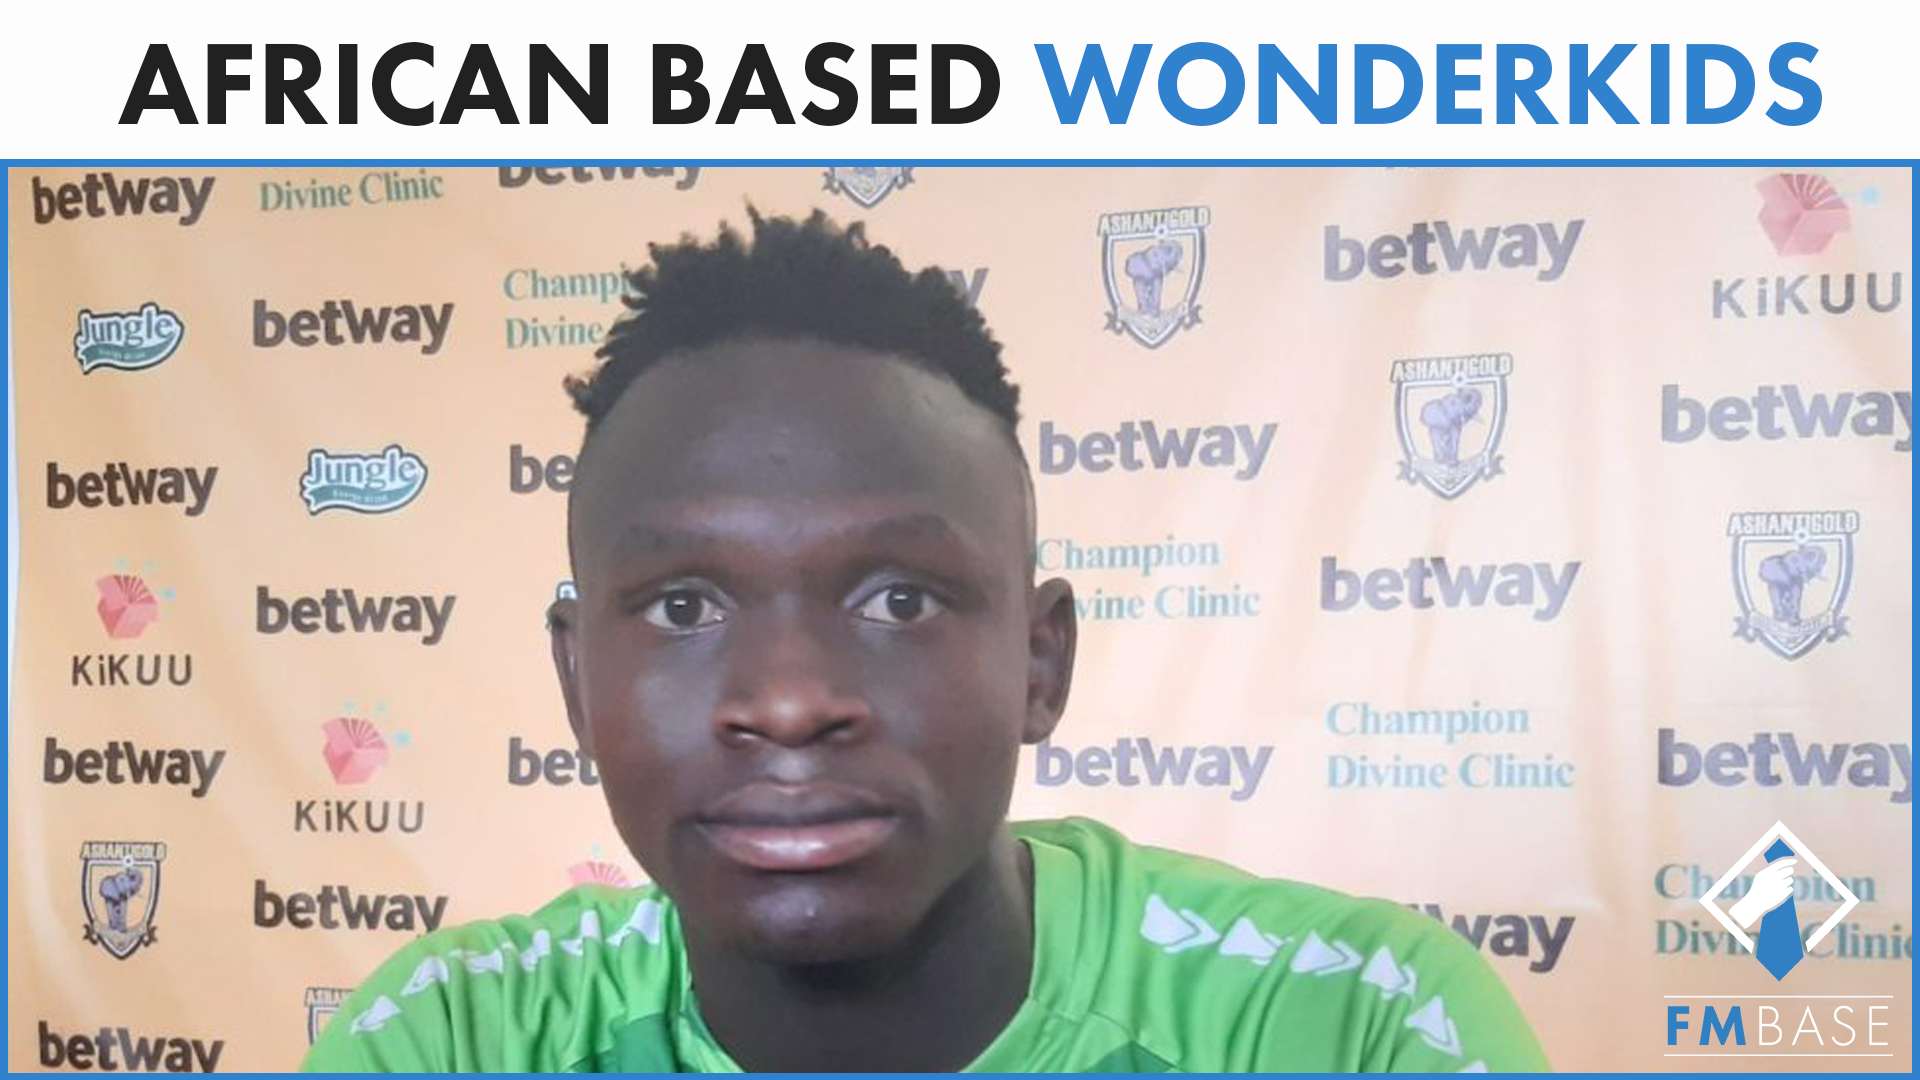 """FM21 African Wonderkids"" feature image"